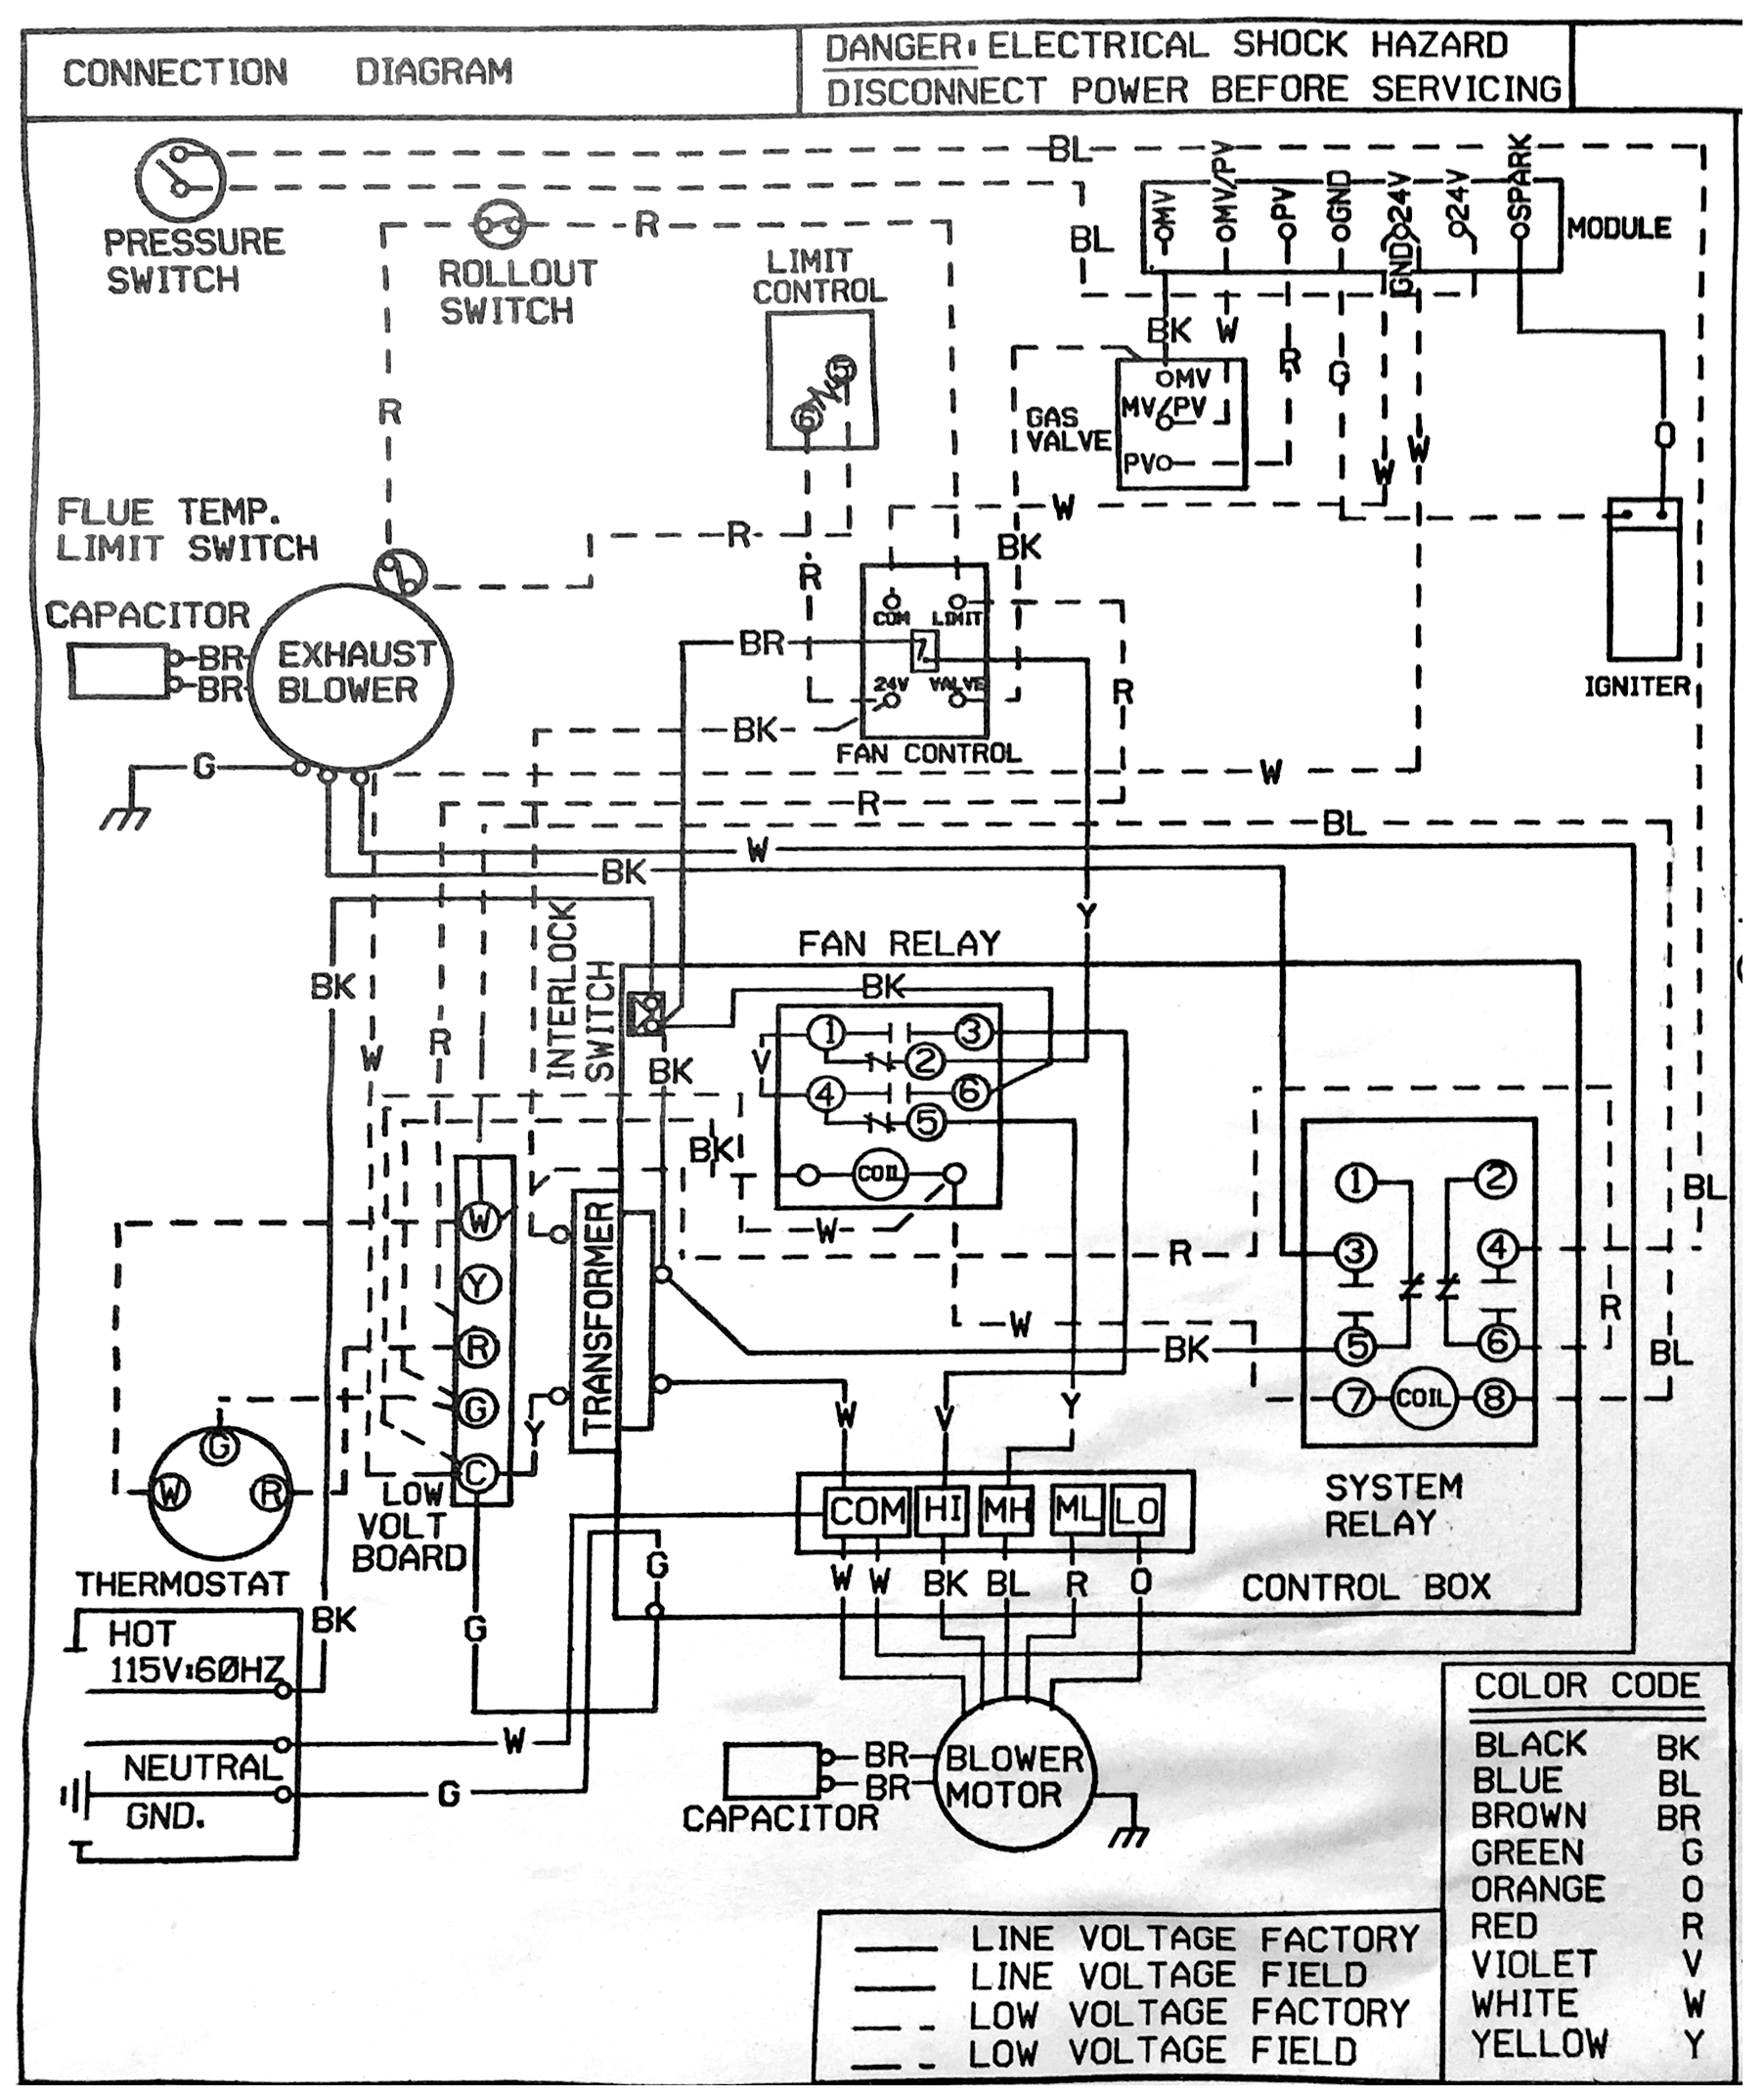 Tempstar Heat Pump Wiring Schematic | Wiring Diagram Liry on westinghouse heat pump schematic, nordyne heat pump schematic, kenmore heat pump schematic, payne heat pump schematic, miller heat pump schematic, coleman heat pump schematic, basic heat pump schematic, carrier heat pump schematic, lennox heat pump schematic, york heat pump schematic, american standard heat pump schematic, goettl heat pump schematic, goodman heat pump schematic, heat pump thermostat wiring schematic, trane heat pump schematic, mcquay heat pump schematic,